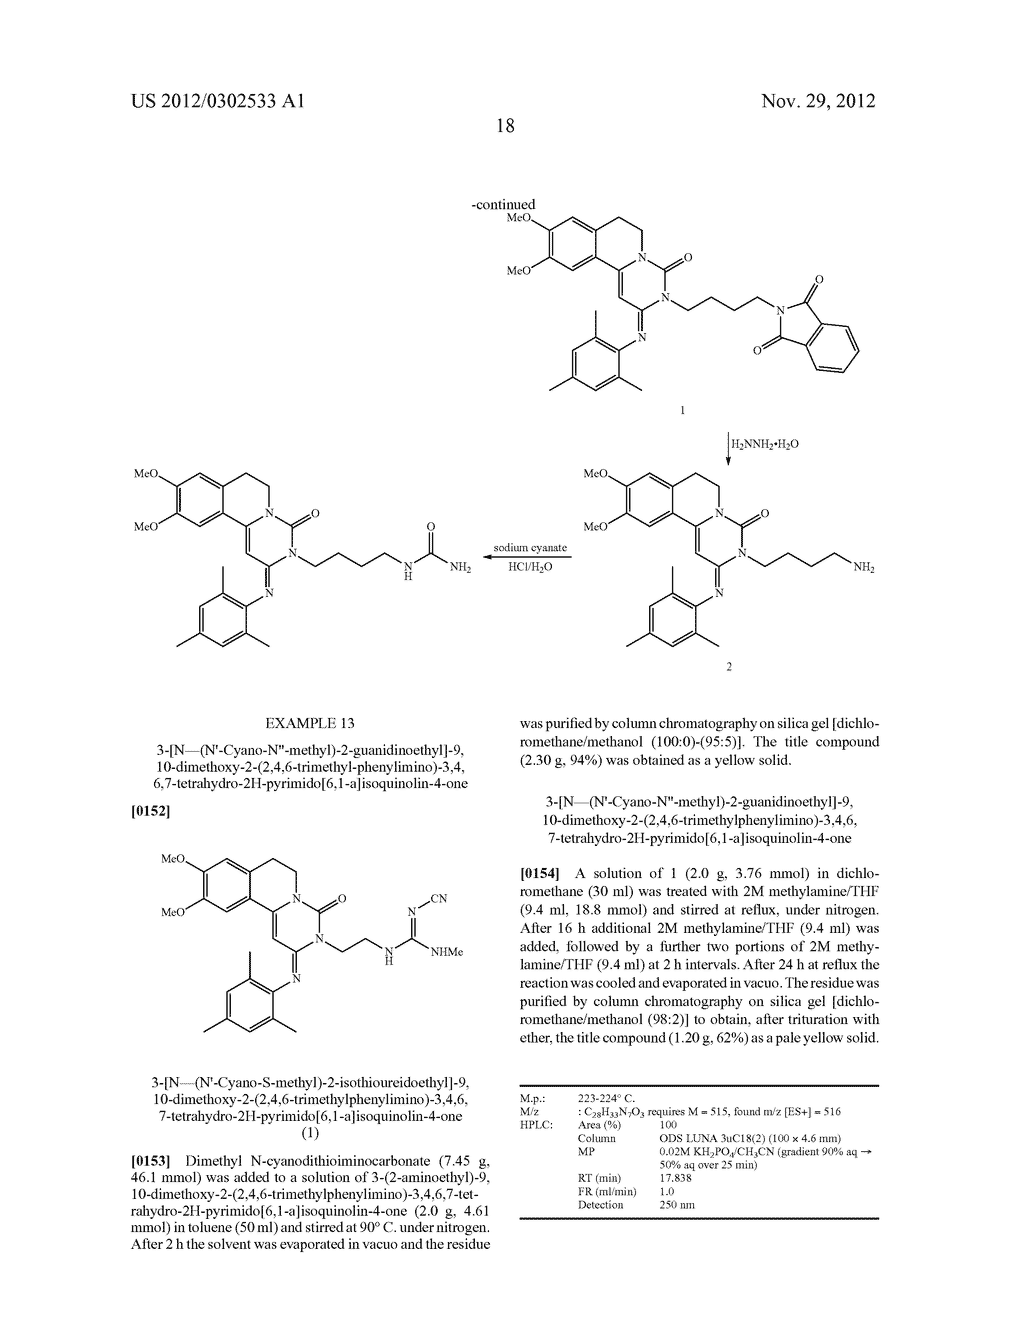 DERIVATIVES OF PYRIMIDO [6,1-A] ISOQUINOLIN-4-ONE - diagram, schematic, and image 24